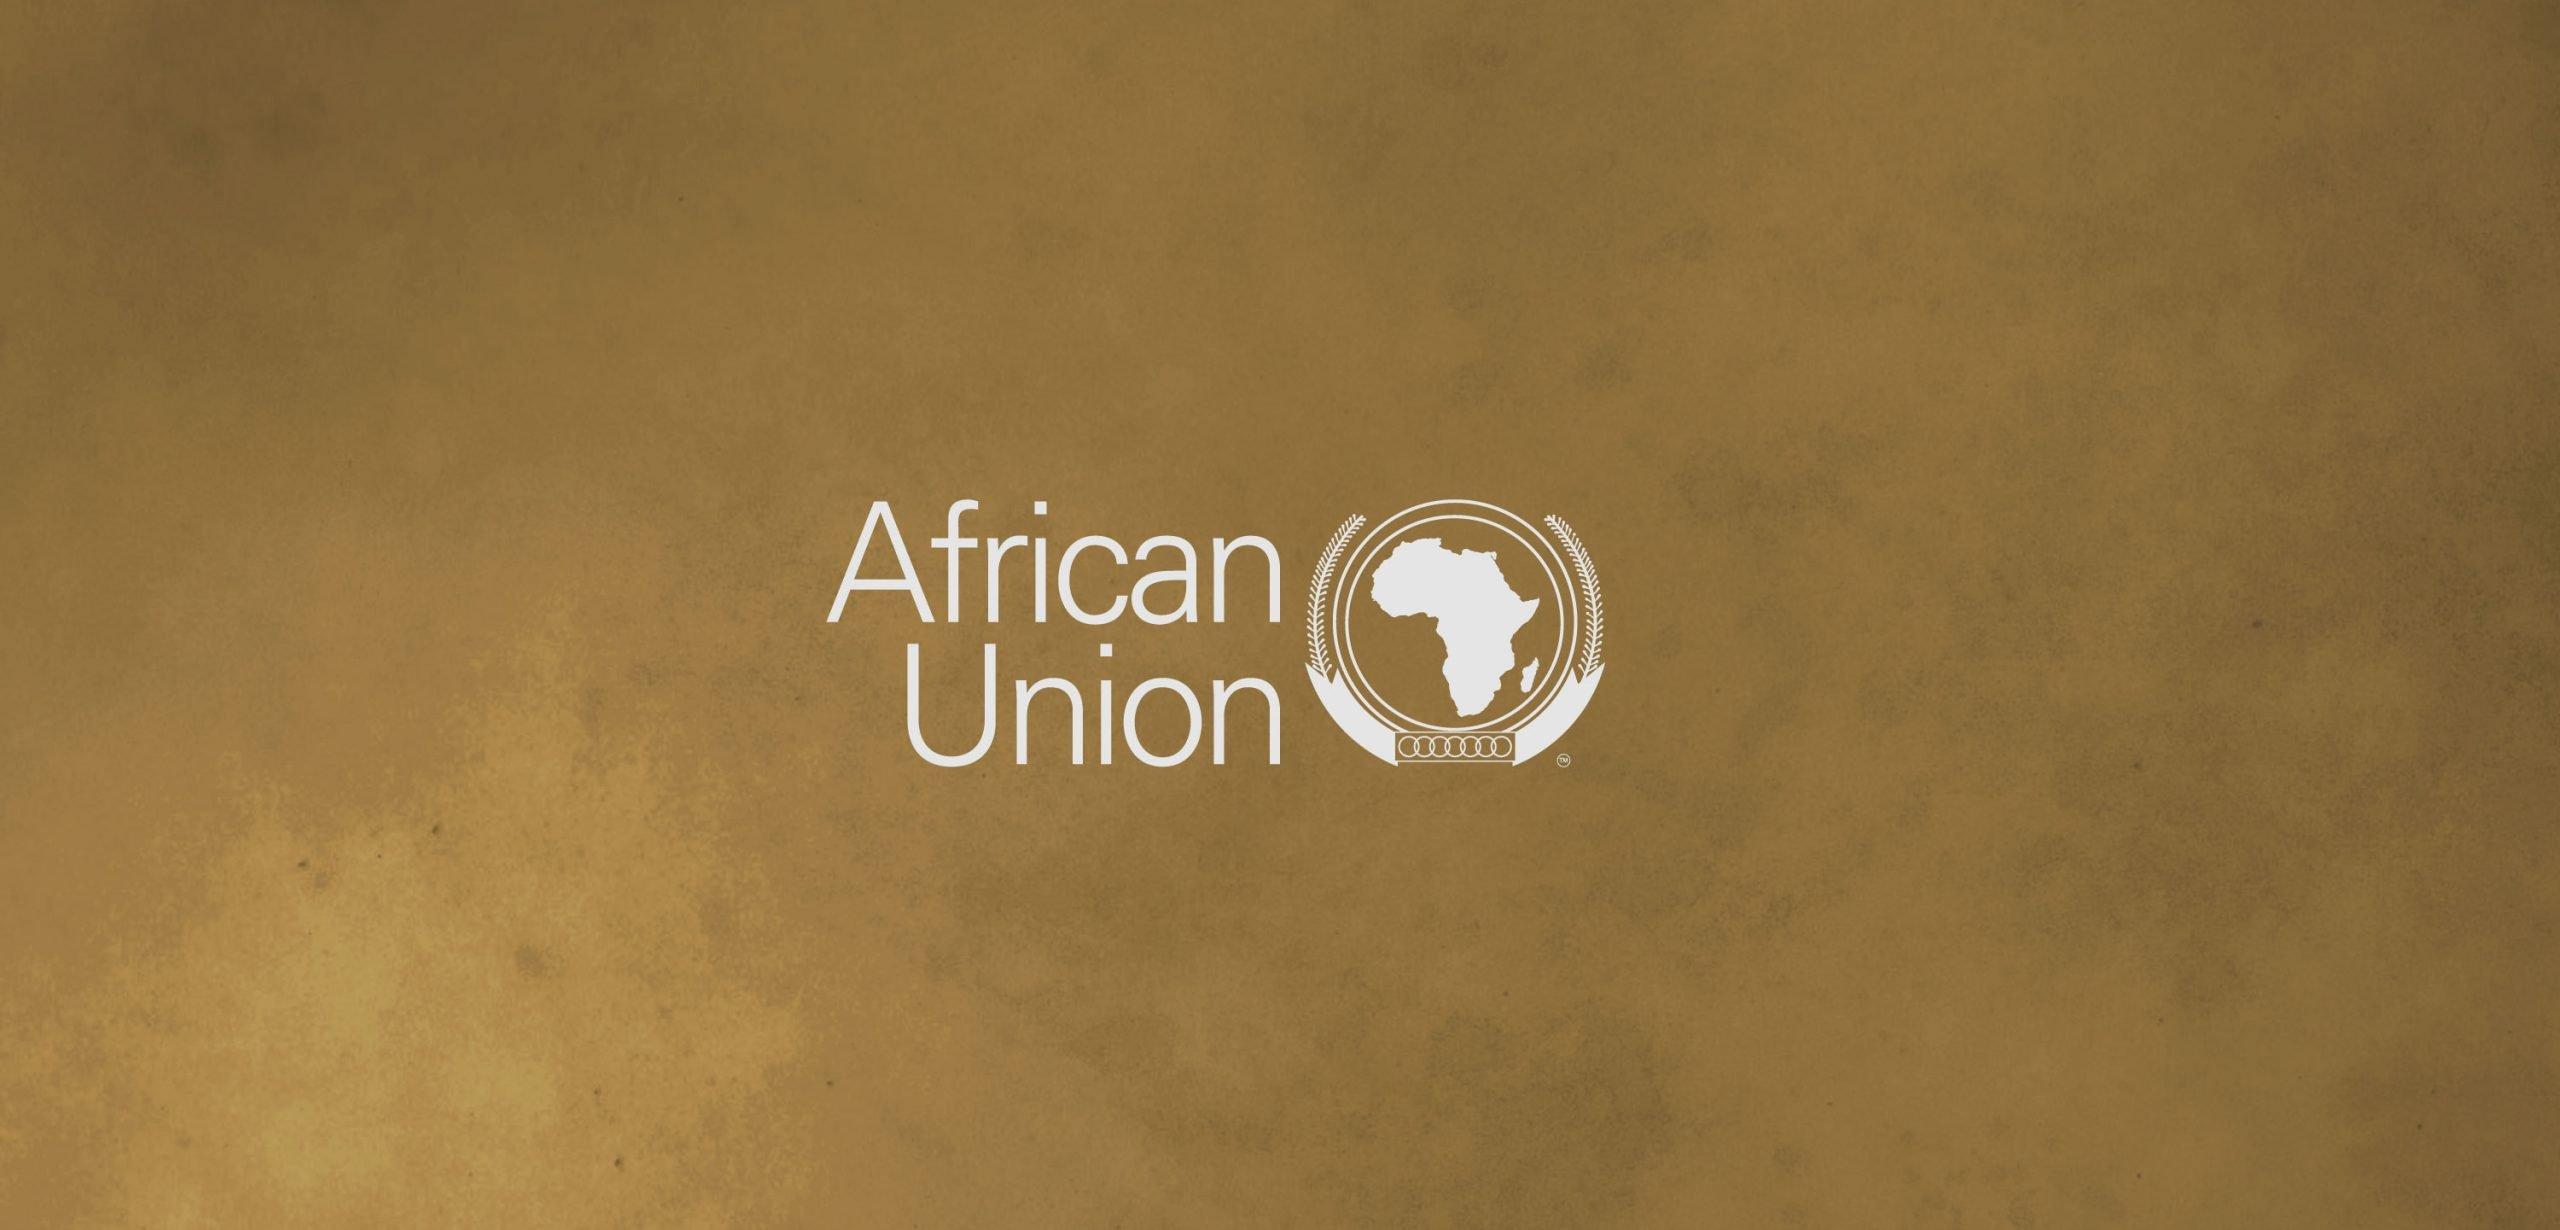 African Union Innovating Education